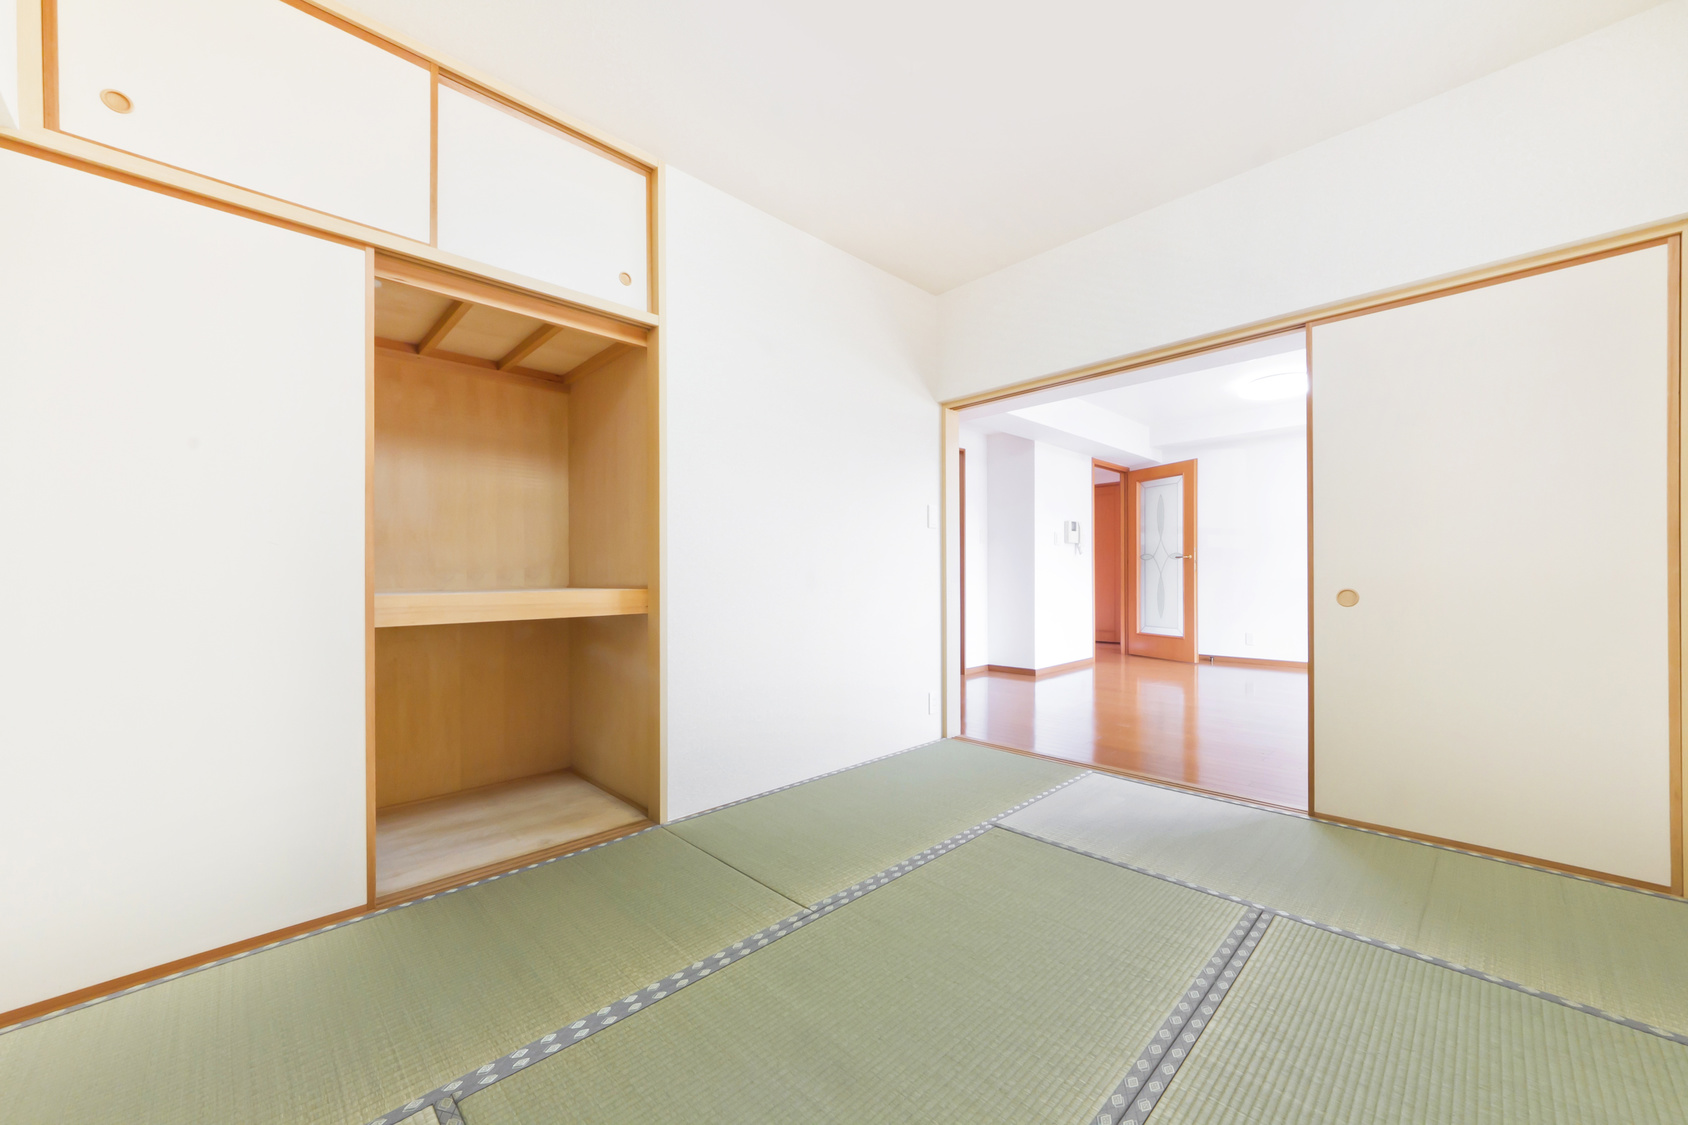 Japanesestyle room